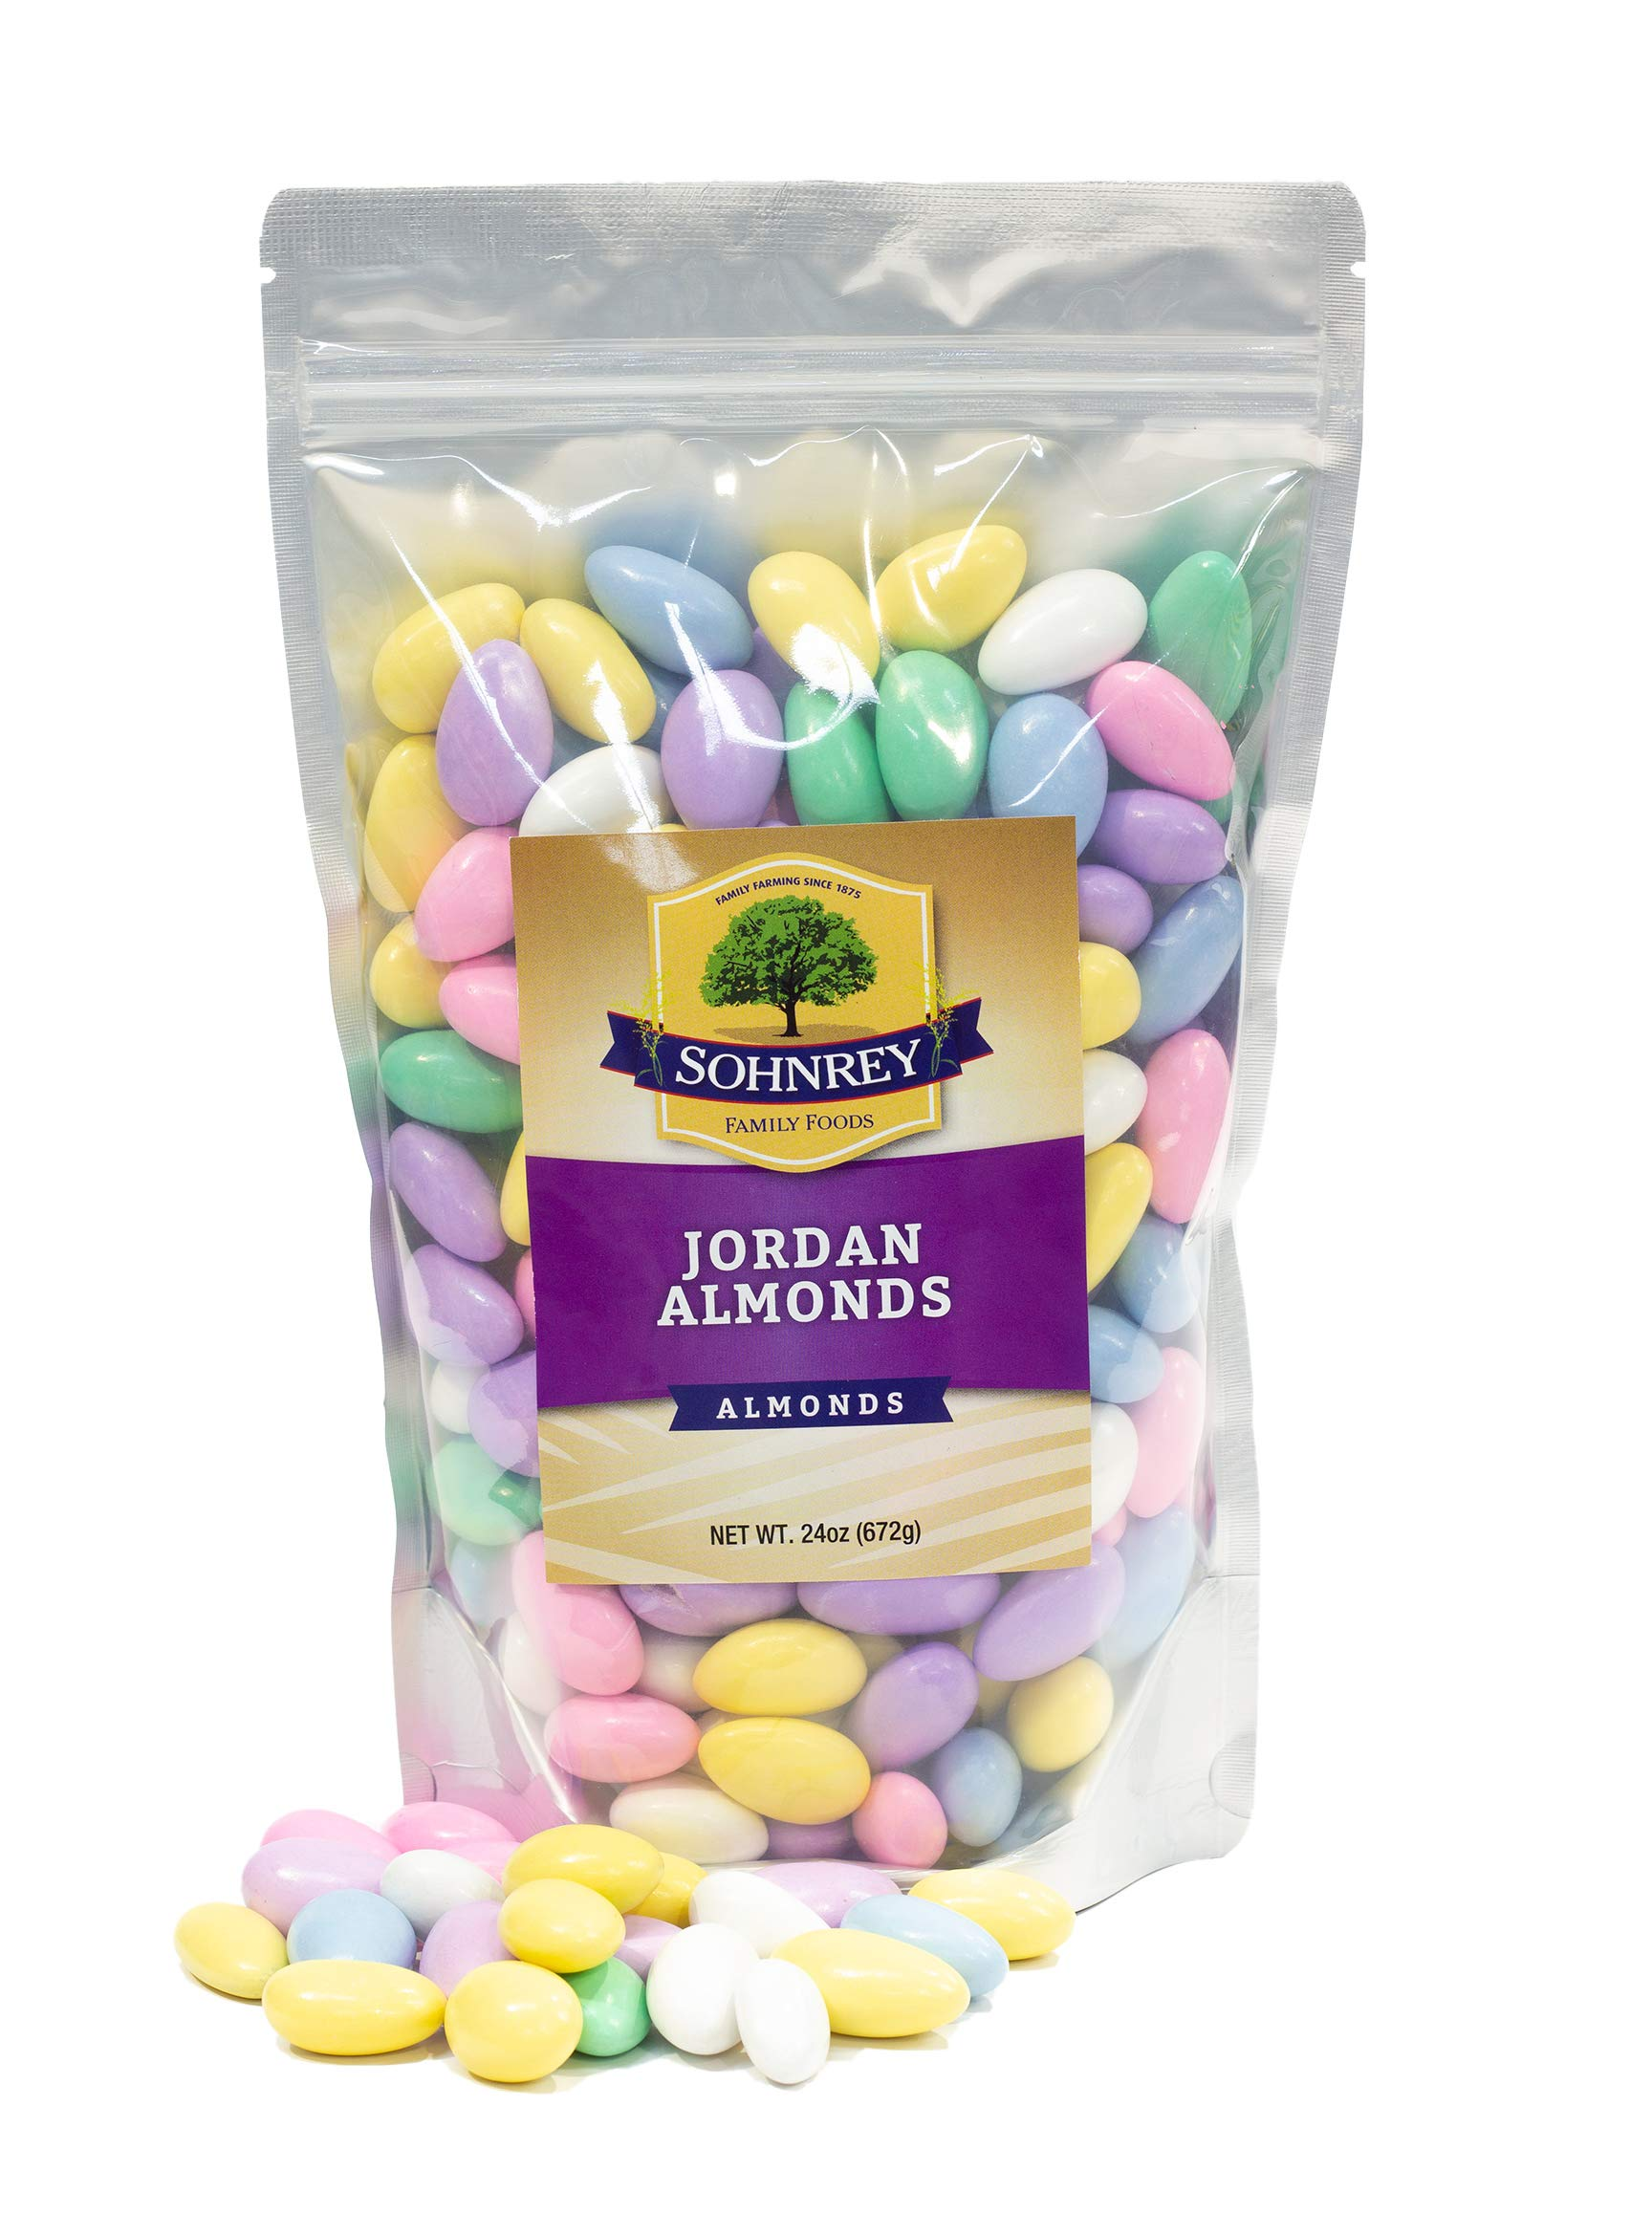 Jordan Almonds Wedding Holiday Party Favor Candies in Colorful Assorted Pastel Mix (24 oz) by Sohnrey Family Foods ... by Sohnrey Family Foods